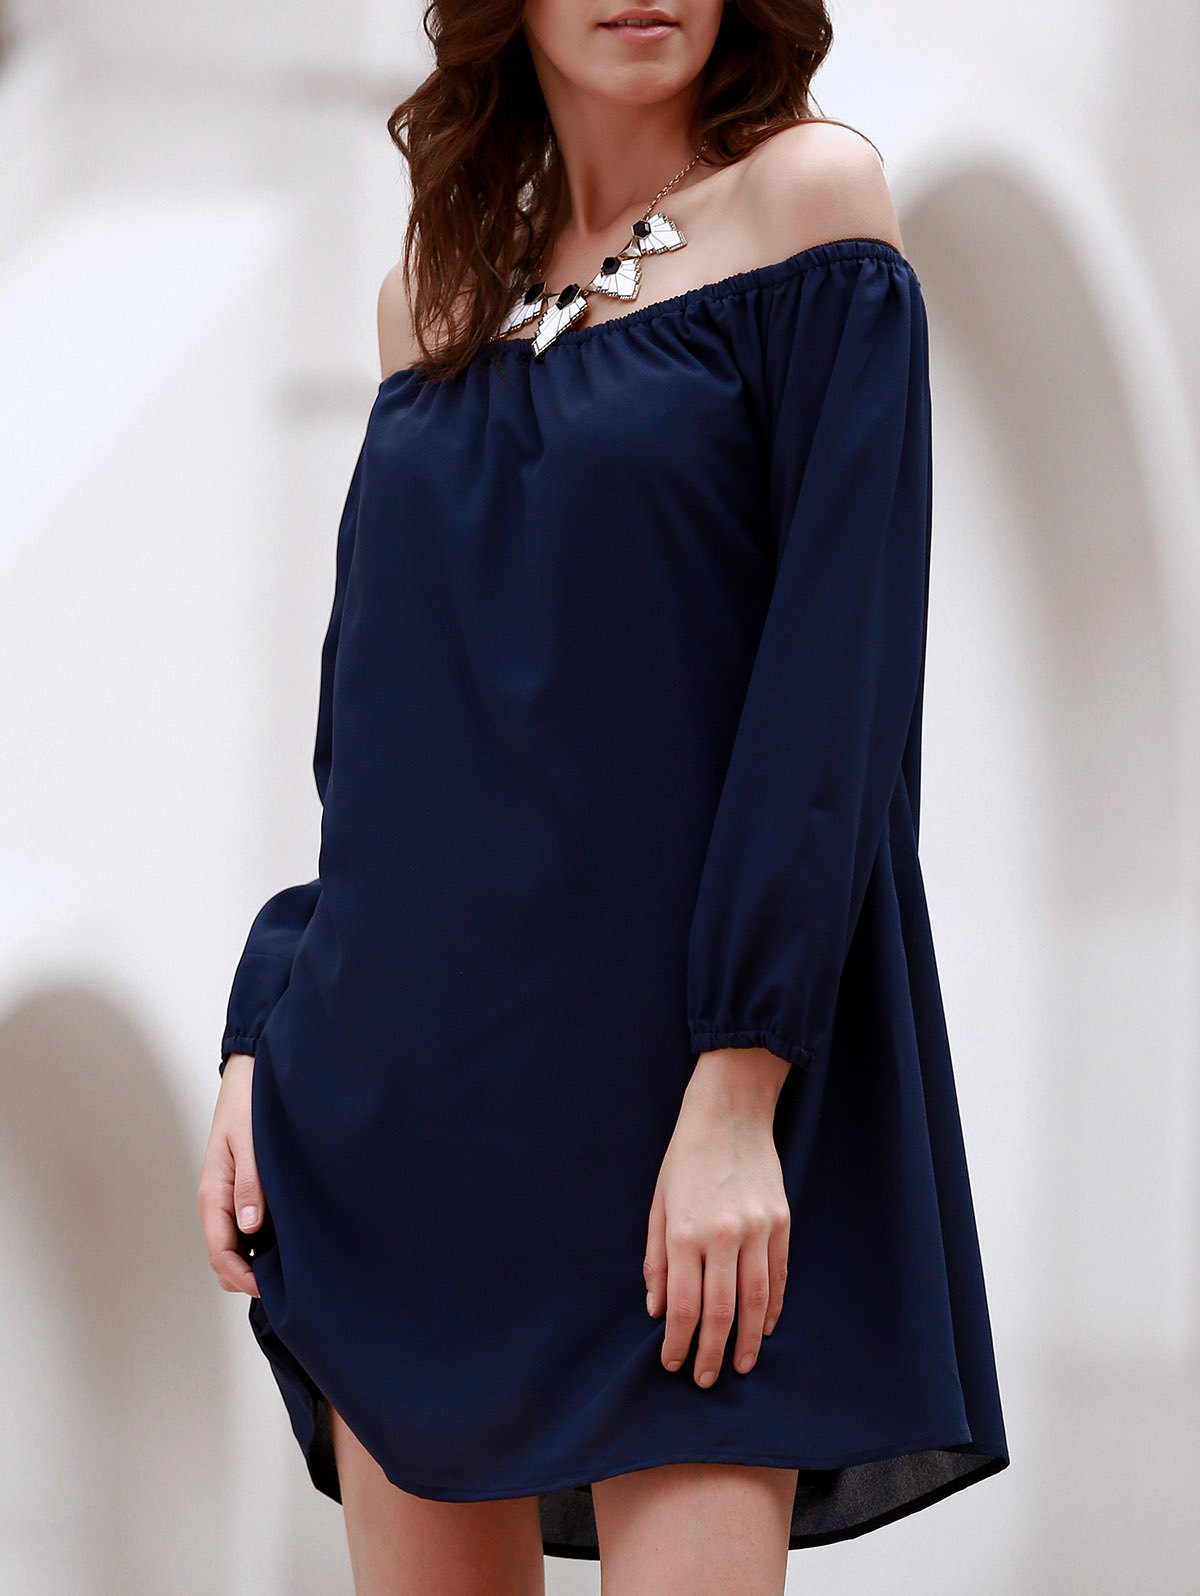 Sexy Off The Shoulder Long Sleeve Solid Color Women's Chiffon Dress